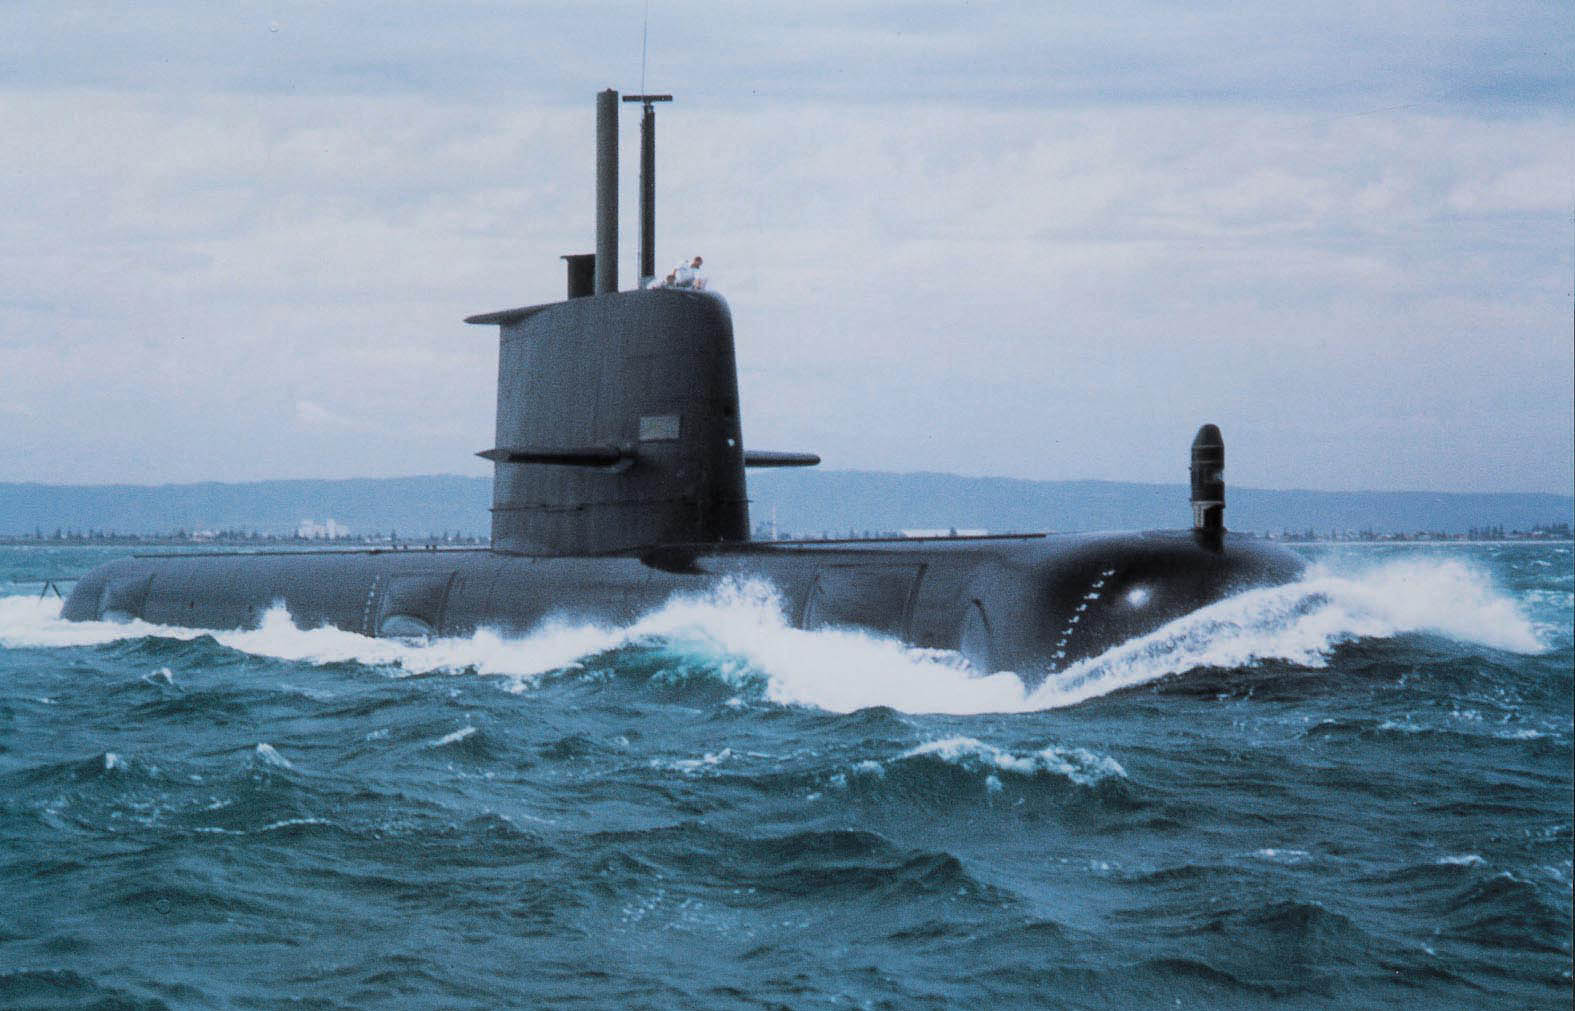 Australia is currently examining options to replace the Collins submarine replacement, including an all-new design or an evolution of the Collins